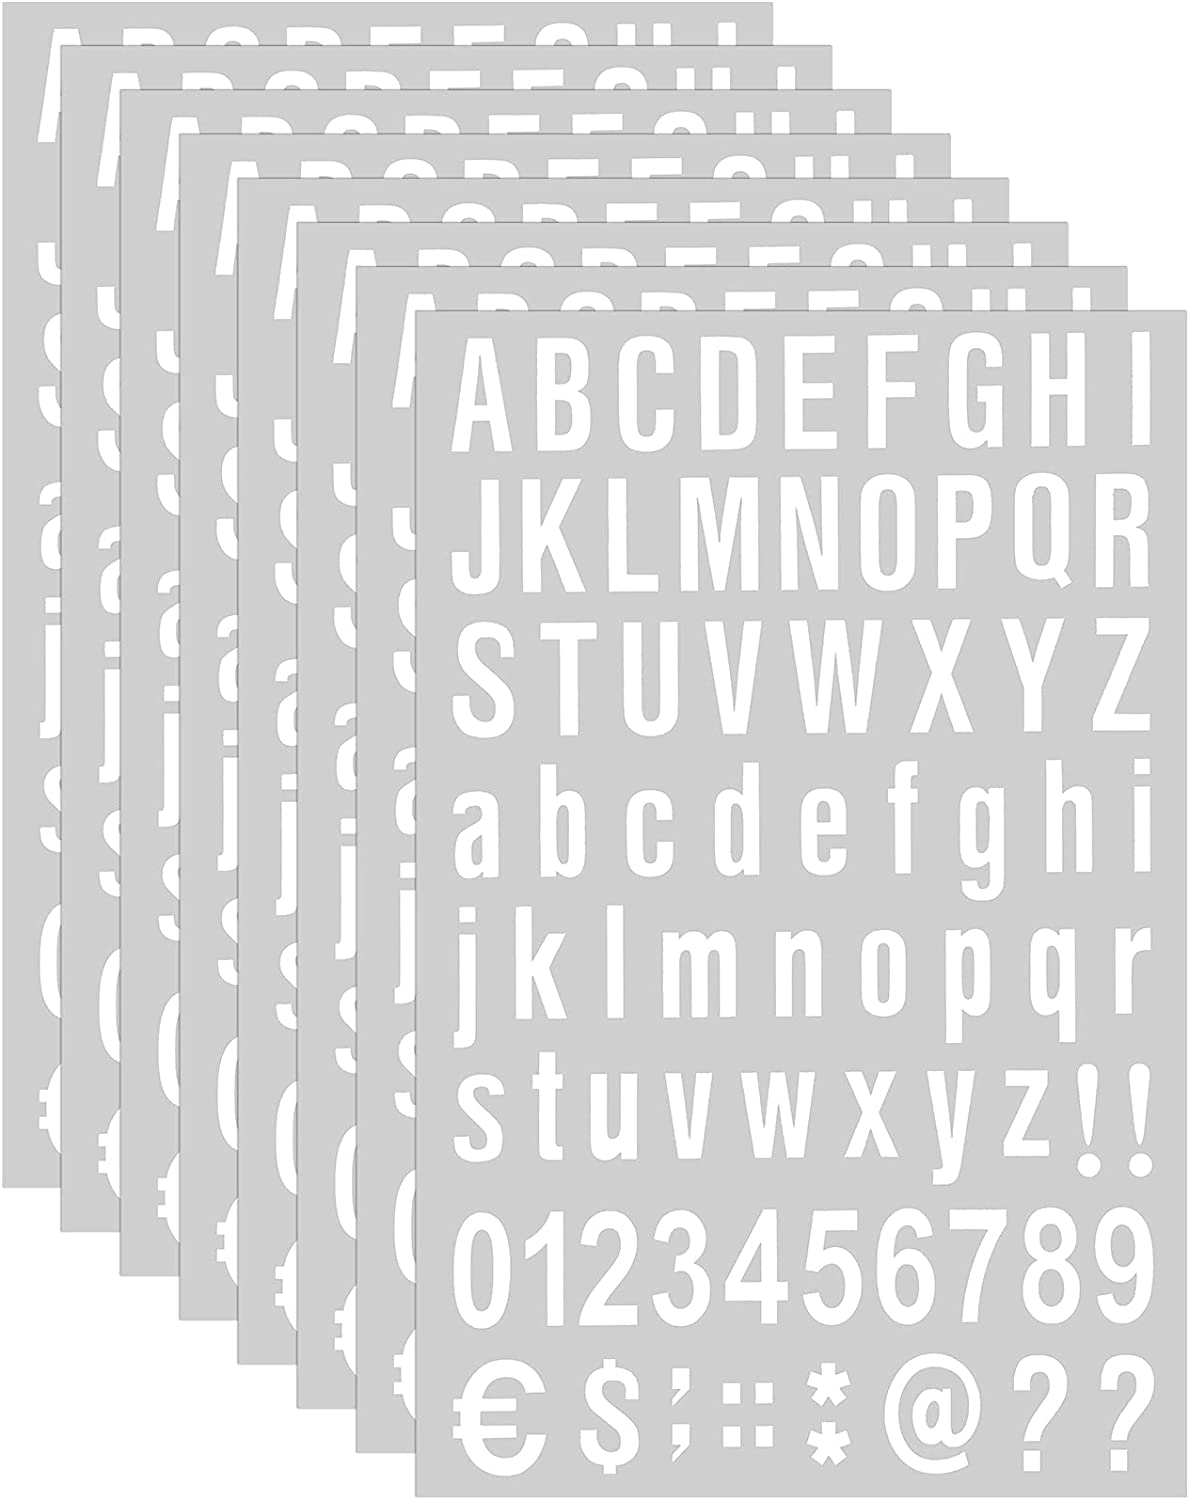 8 Sheets Self Adhesive Vinyl Letters Numbers Kit, Mailbox Numbers Sticker for Mailbox, Signs, Window, Door, Cars, Trucks, Home, Business, Address Number (1 Inch, White)